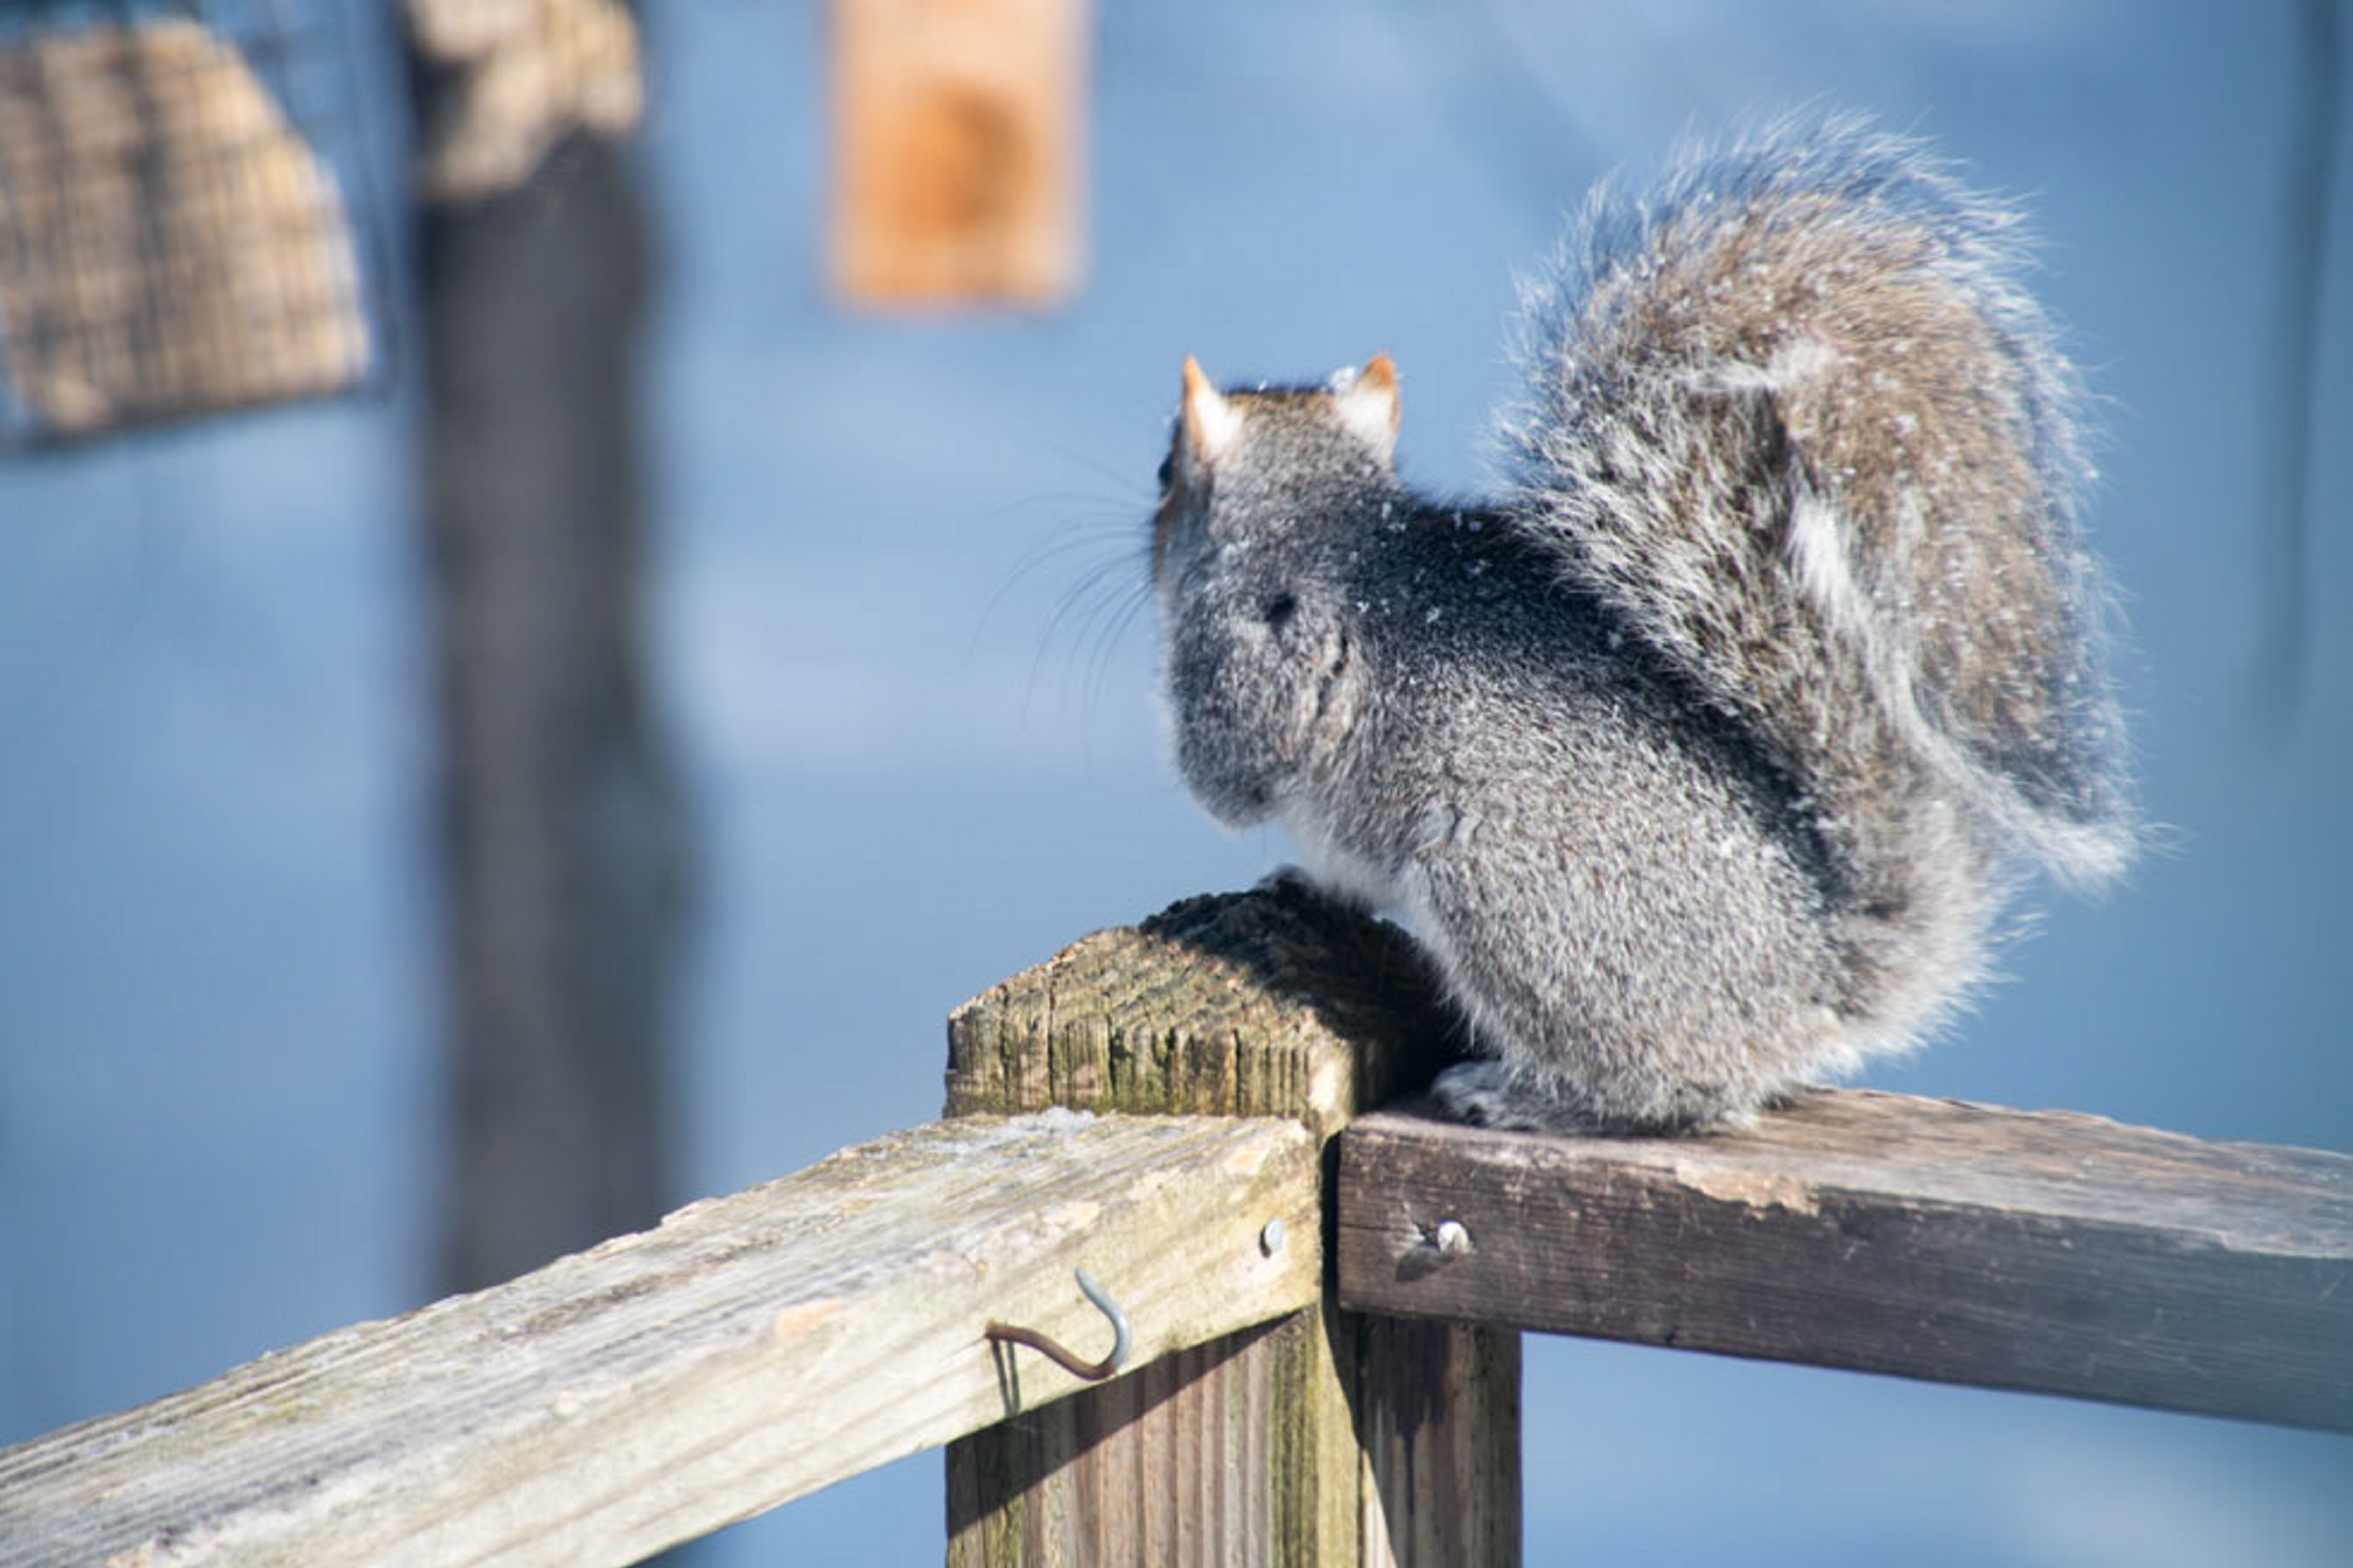 The birds at George Kostovick's feeder in Harrison may soon be sent off by this squirrel with its eyes on the prize.